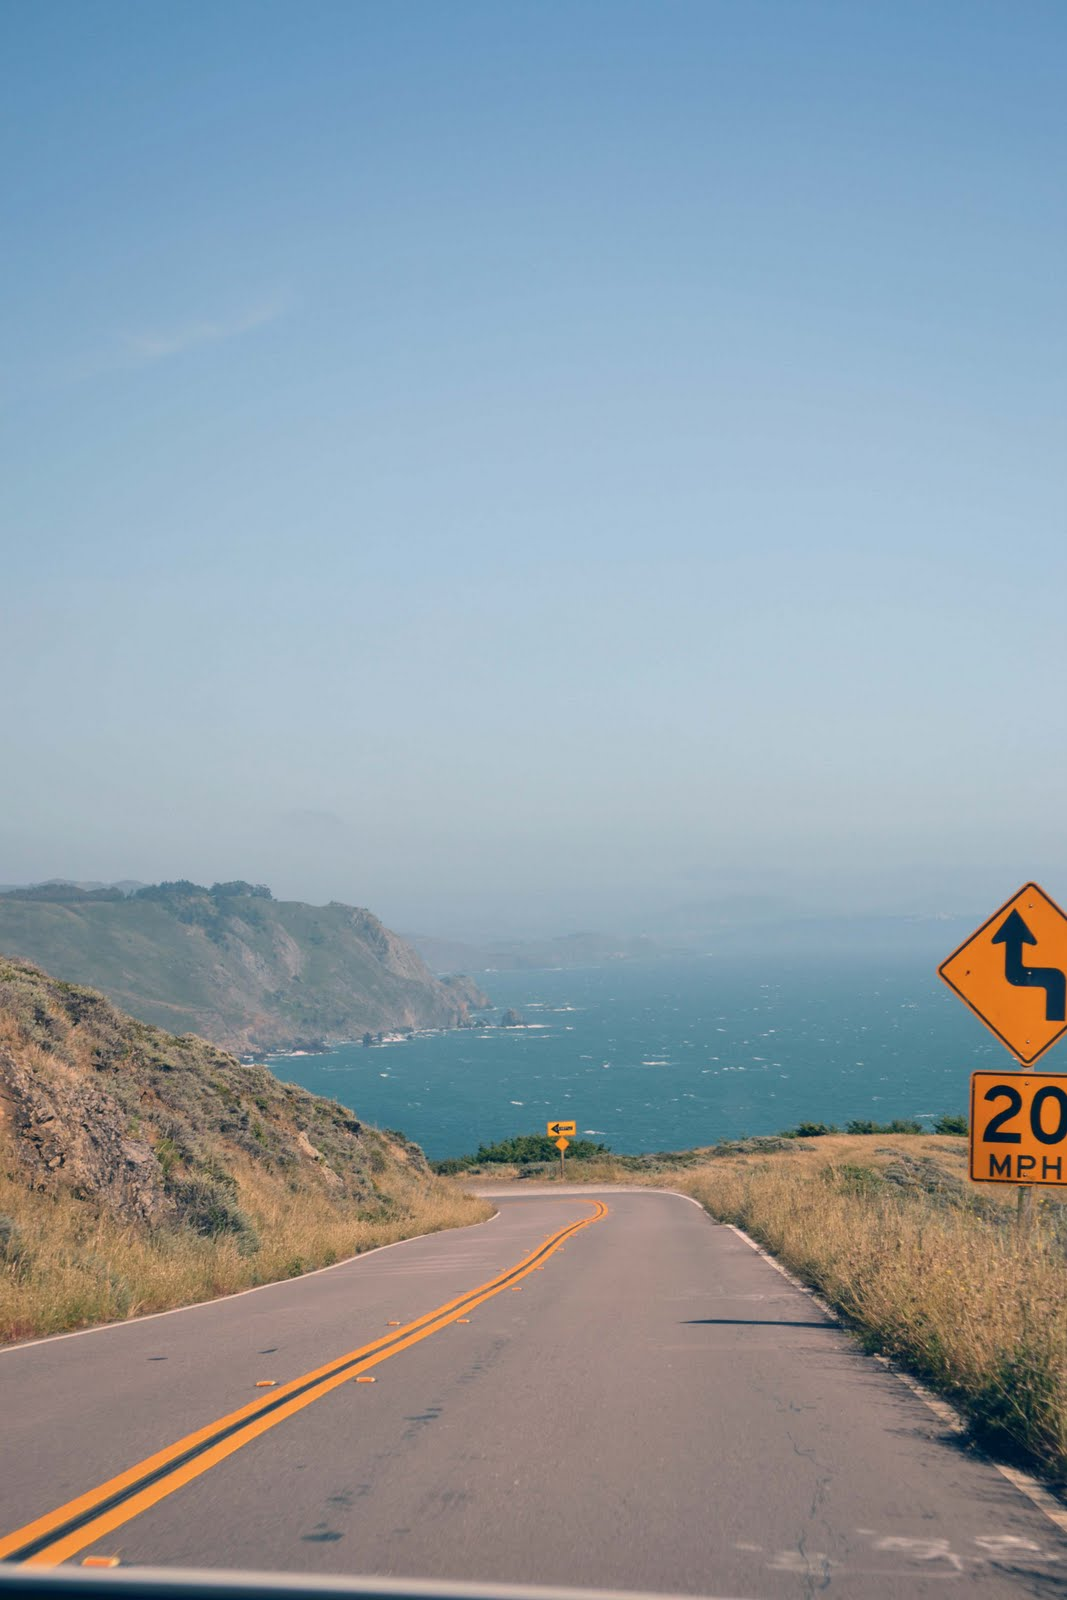 Ly + Alan: California Highway 1